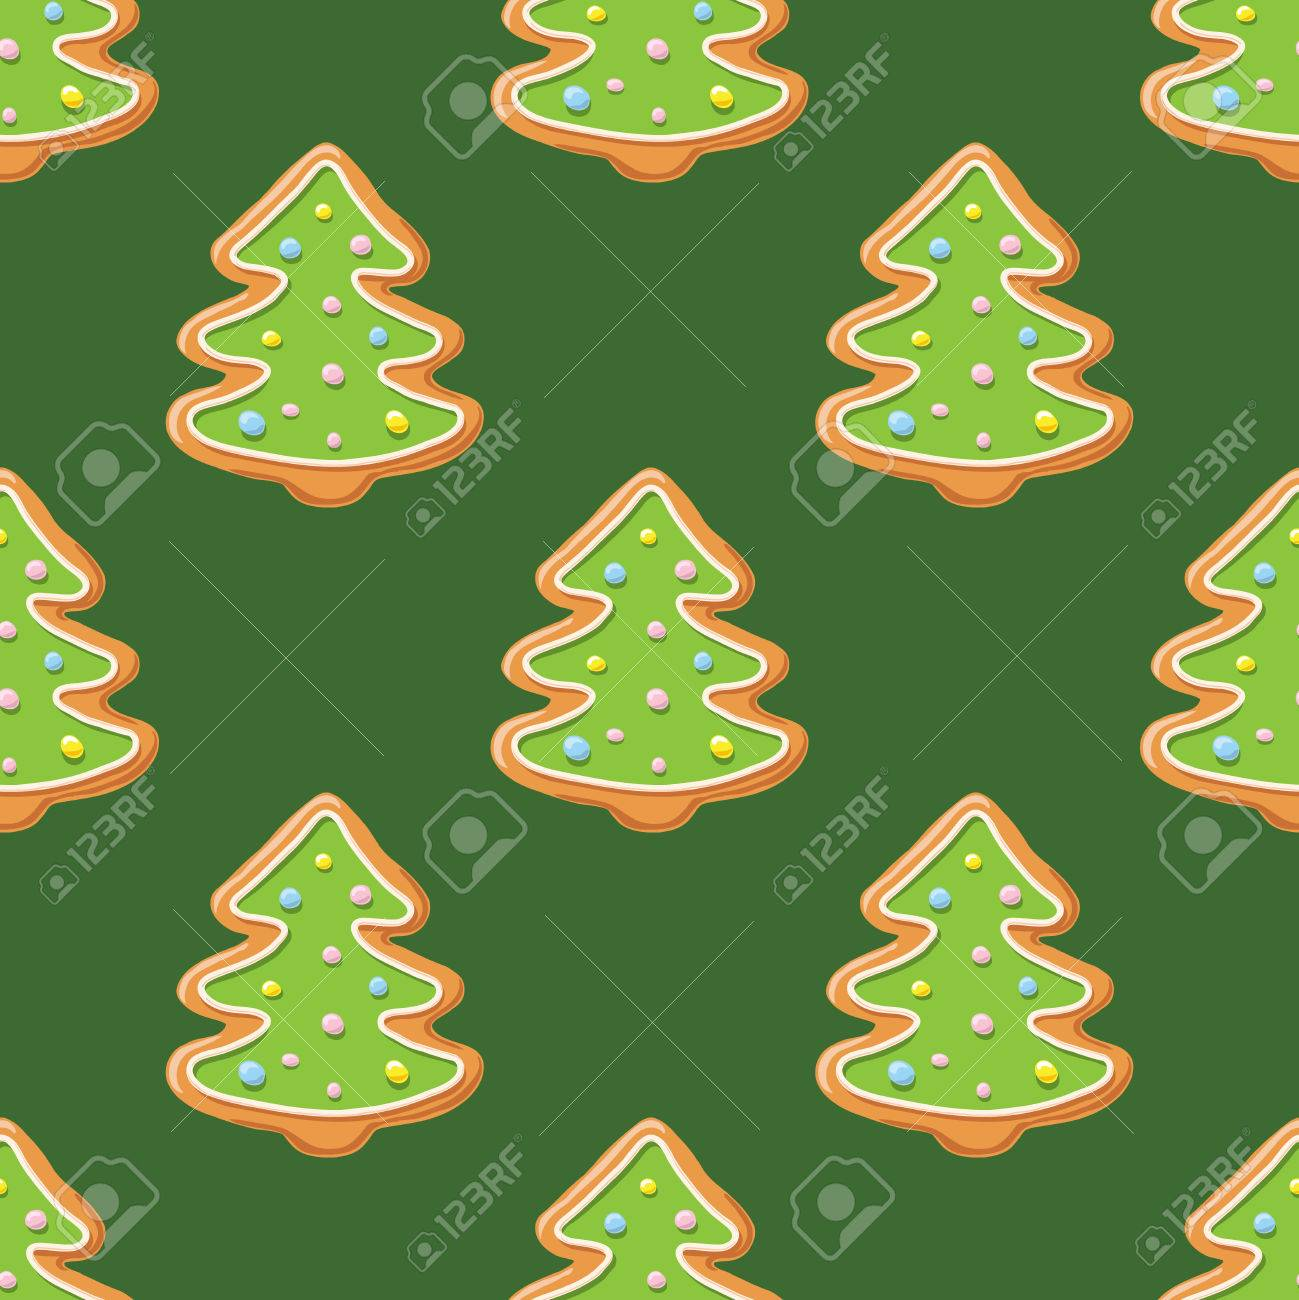 85121662 christmas gingerbread seamless pattern ginger cookies on green background vector illustration cute